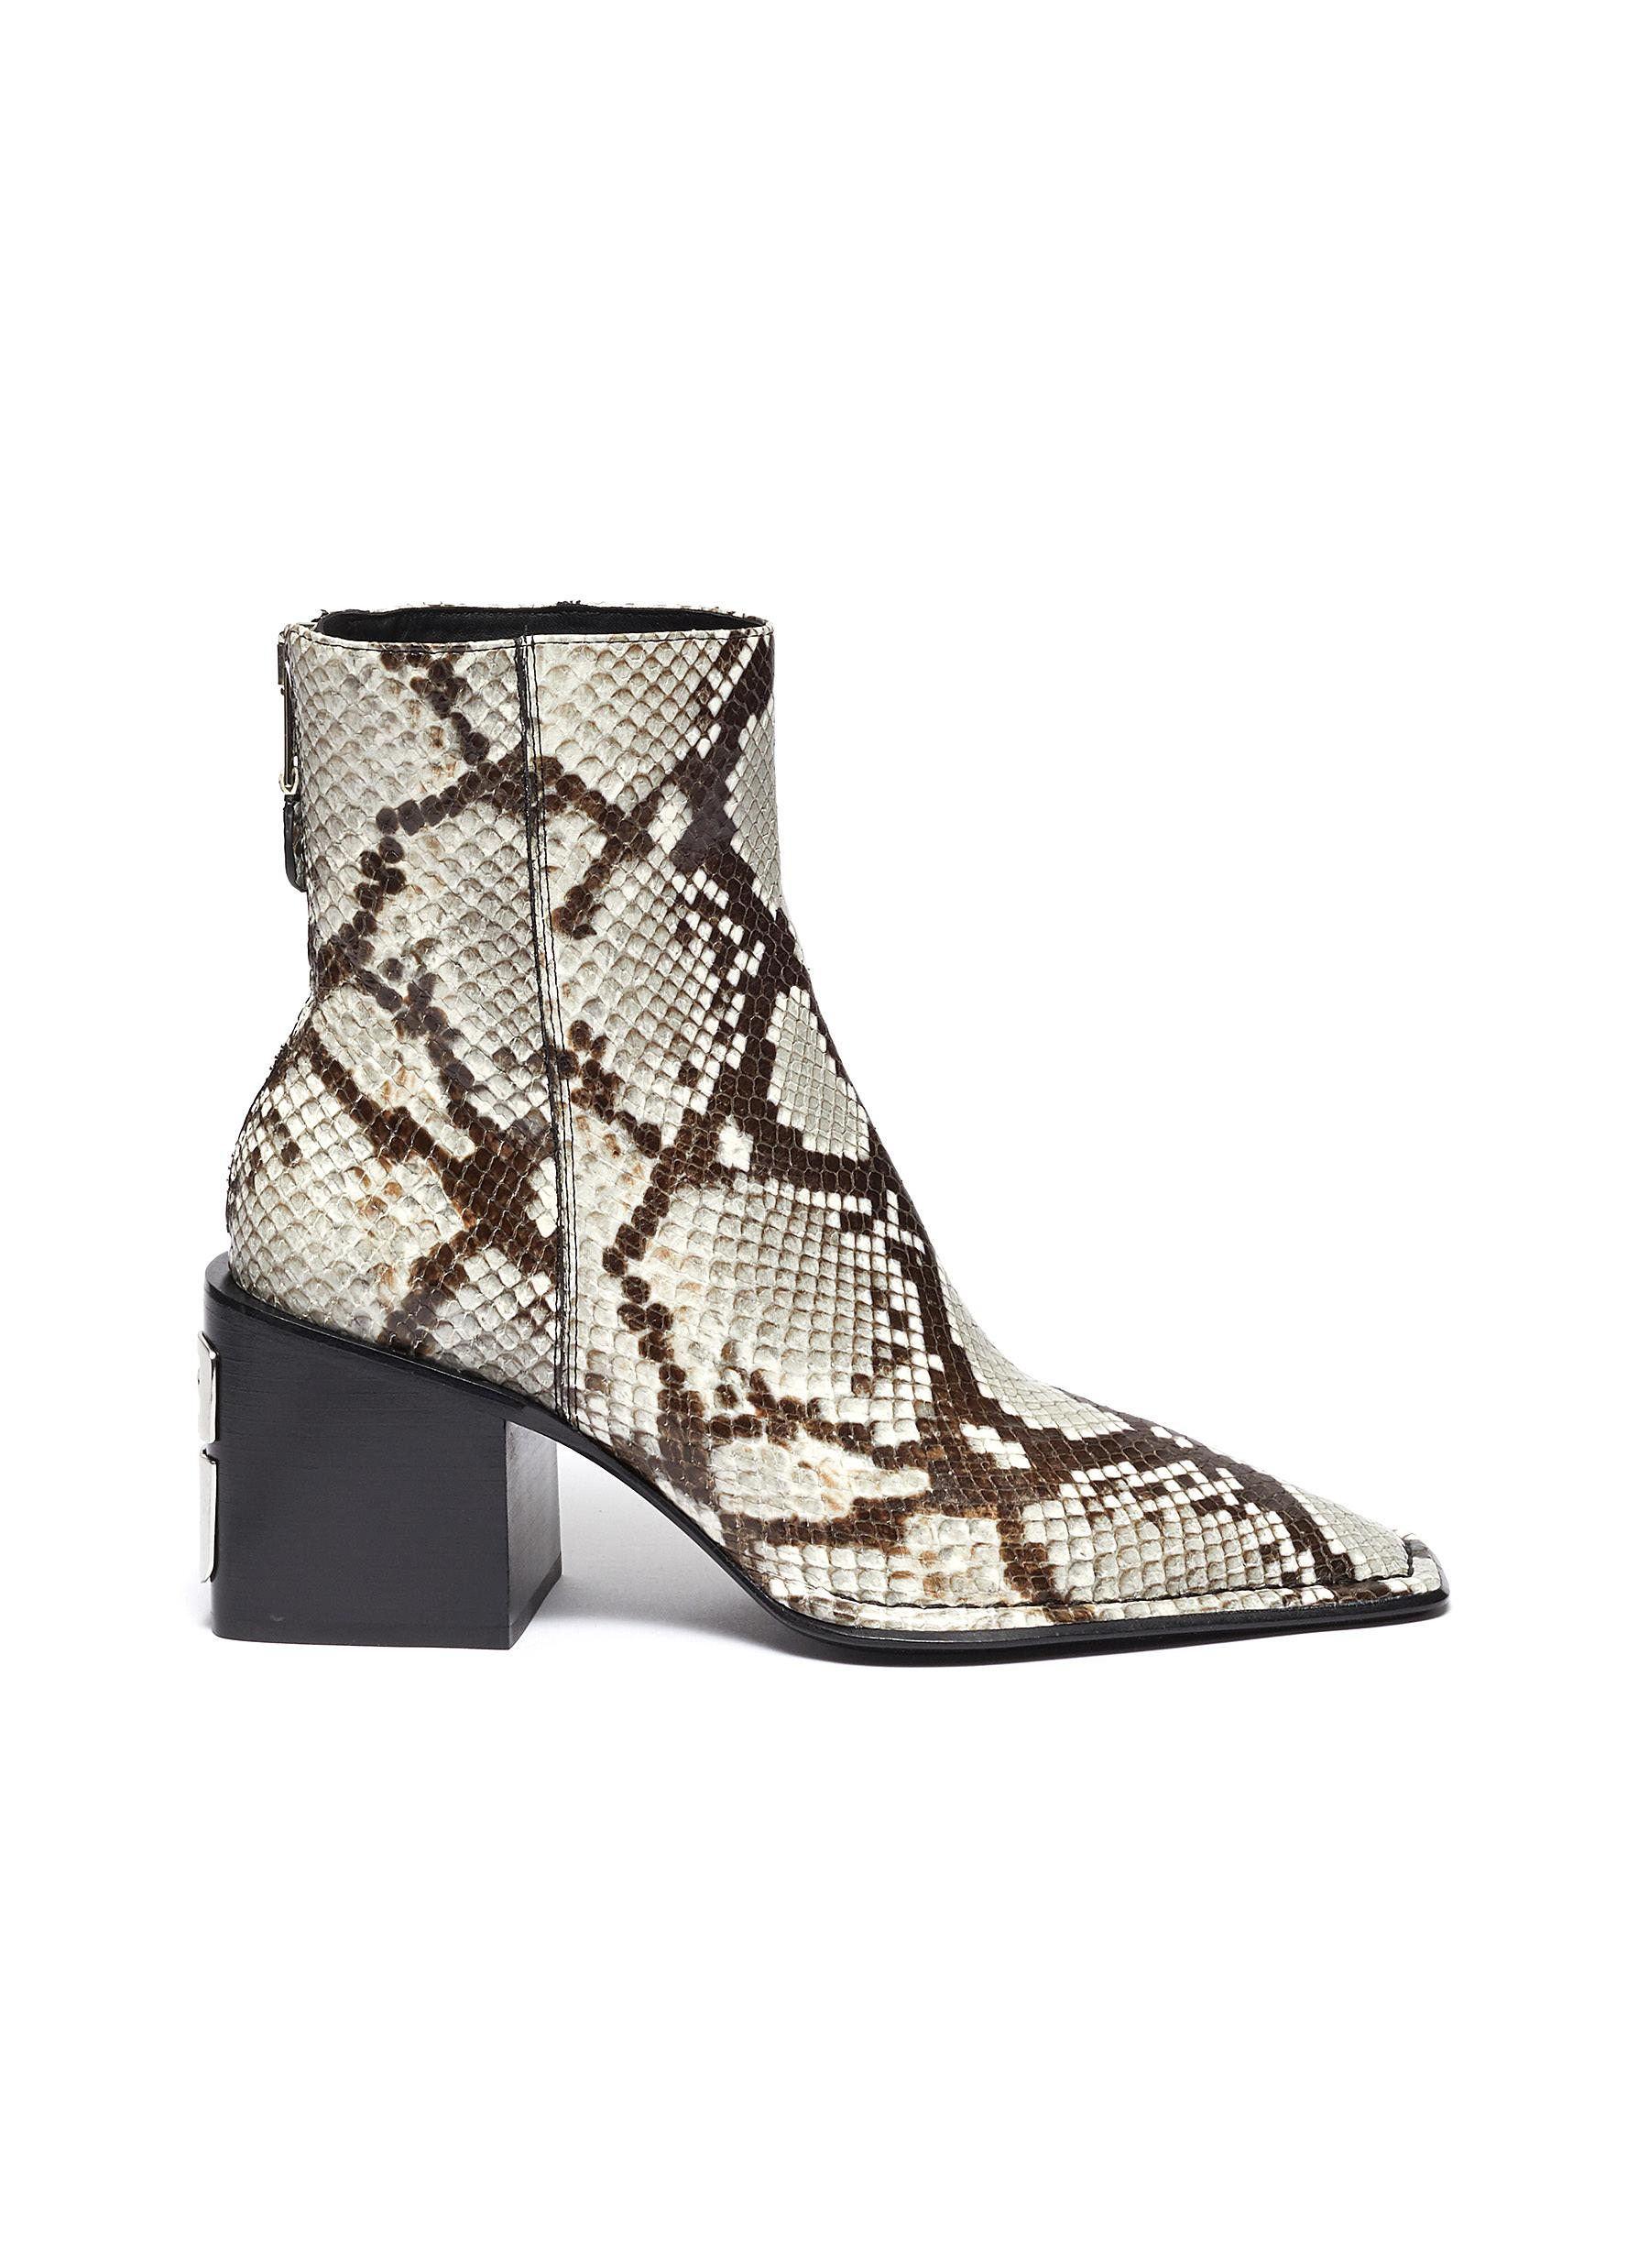 Parker snake embossed leather ankle boots by Alexanderwang